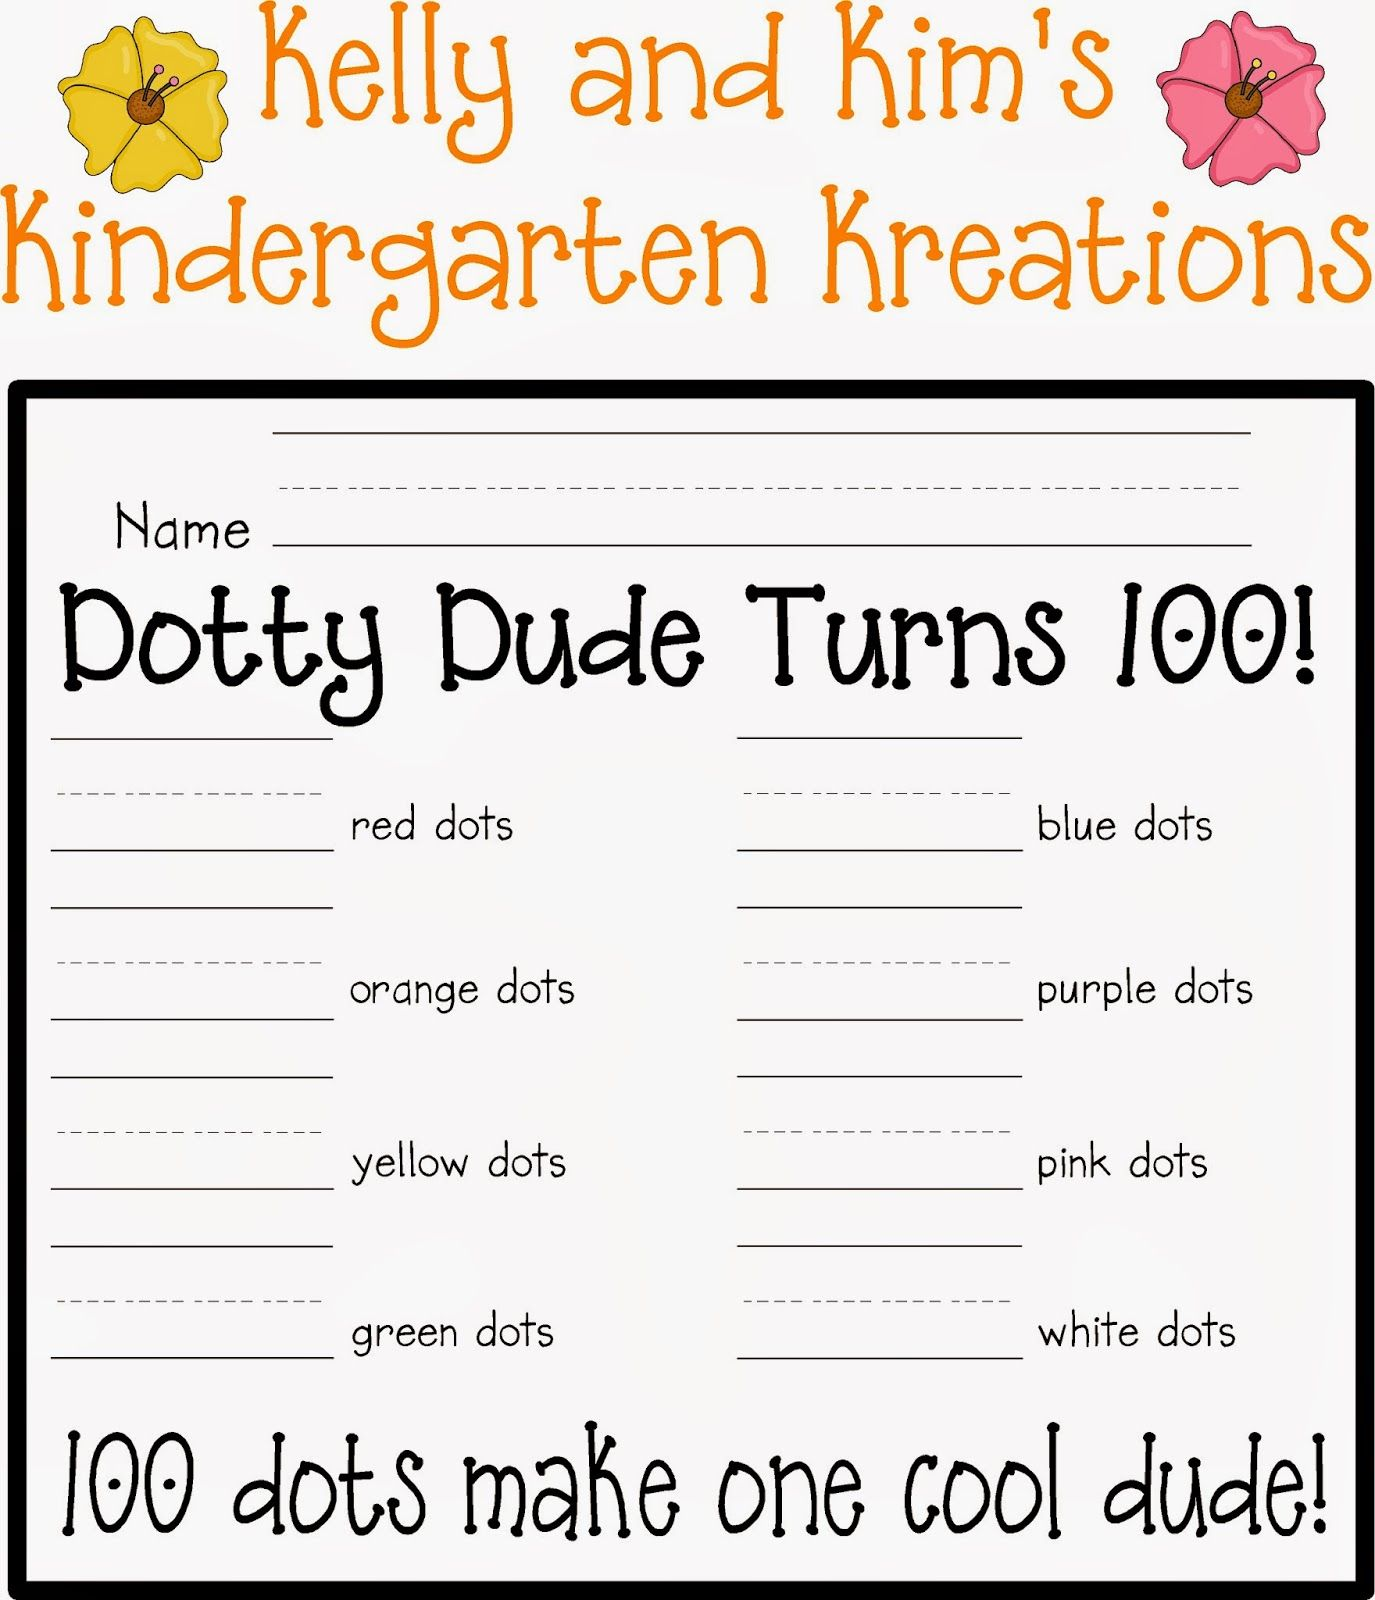 Kelly and Kim's Kindergarten Kreations: 100th Day Fun!